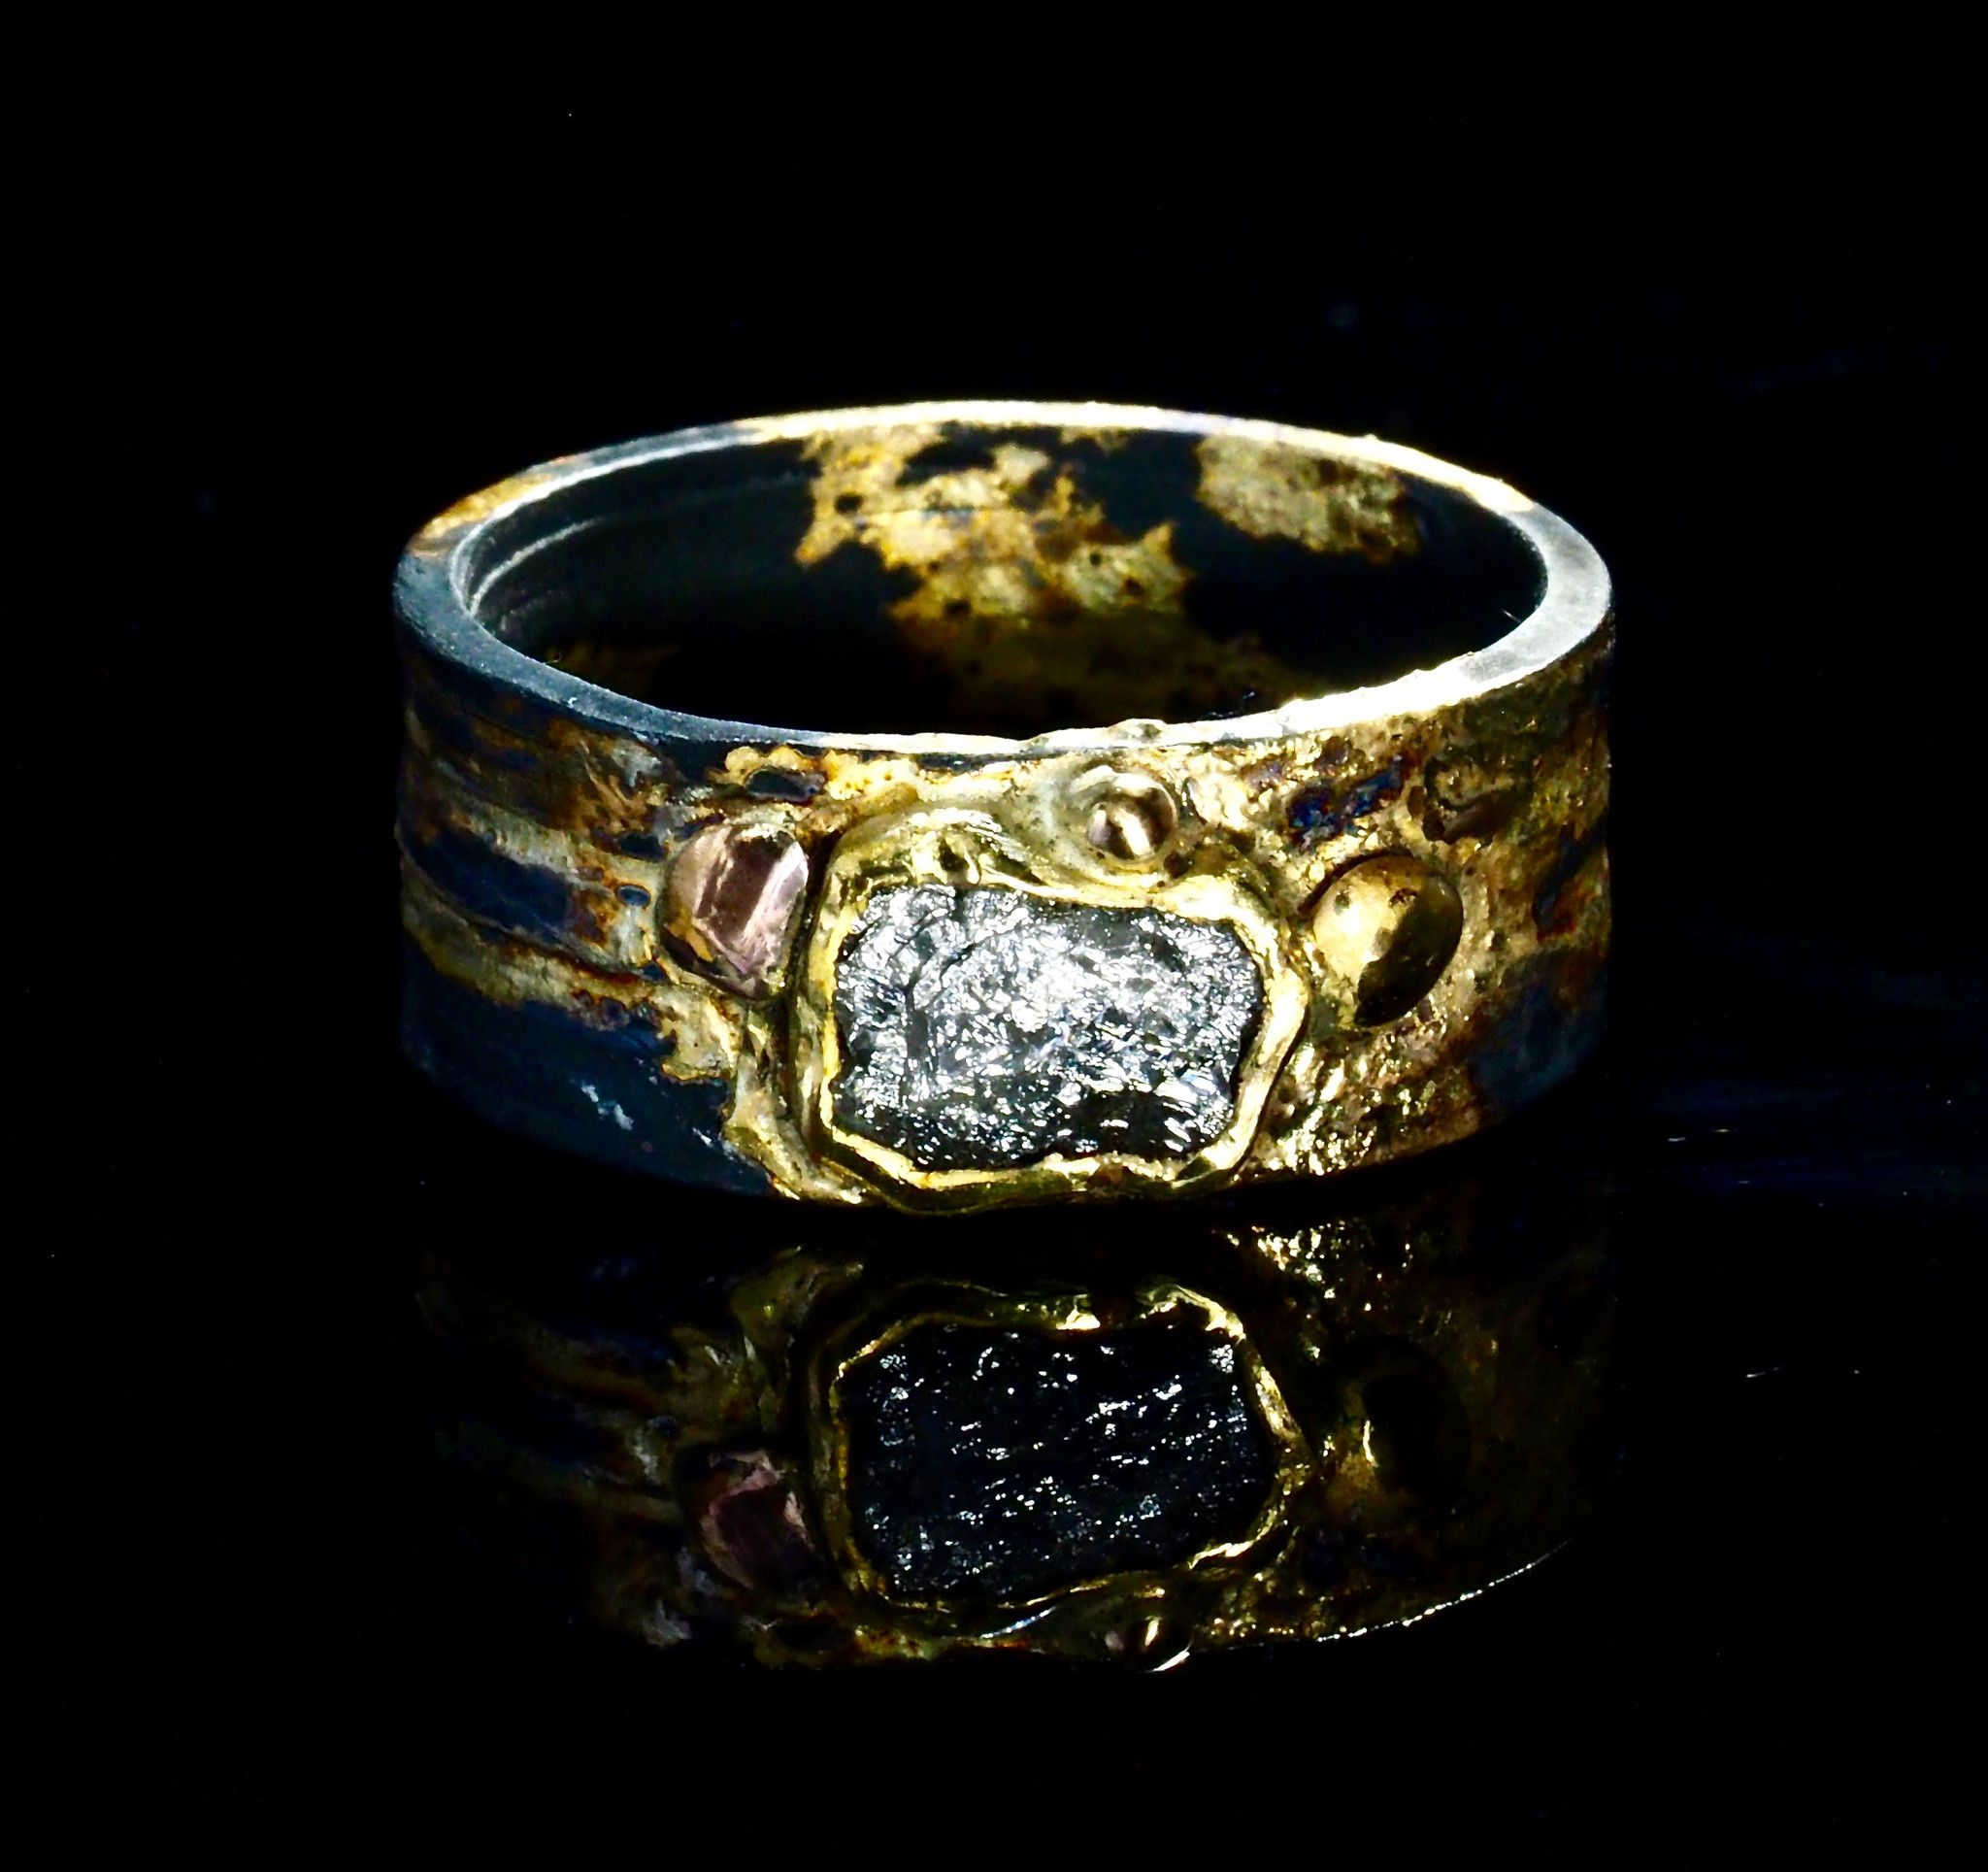 diamond raw vk in uncut engagement love portland product hammered design forged rings gold ring ethical yellow this macle designs wedding recycled